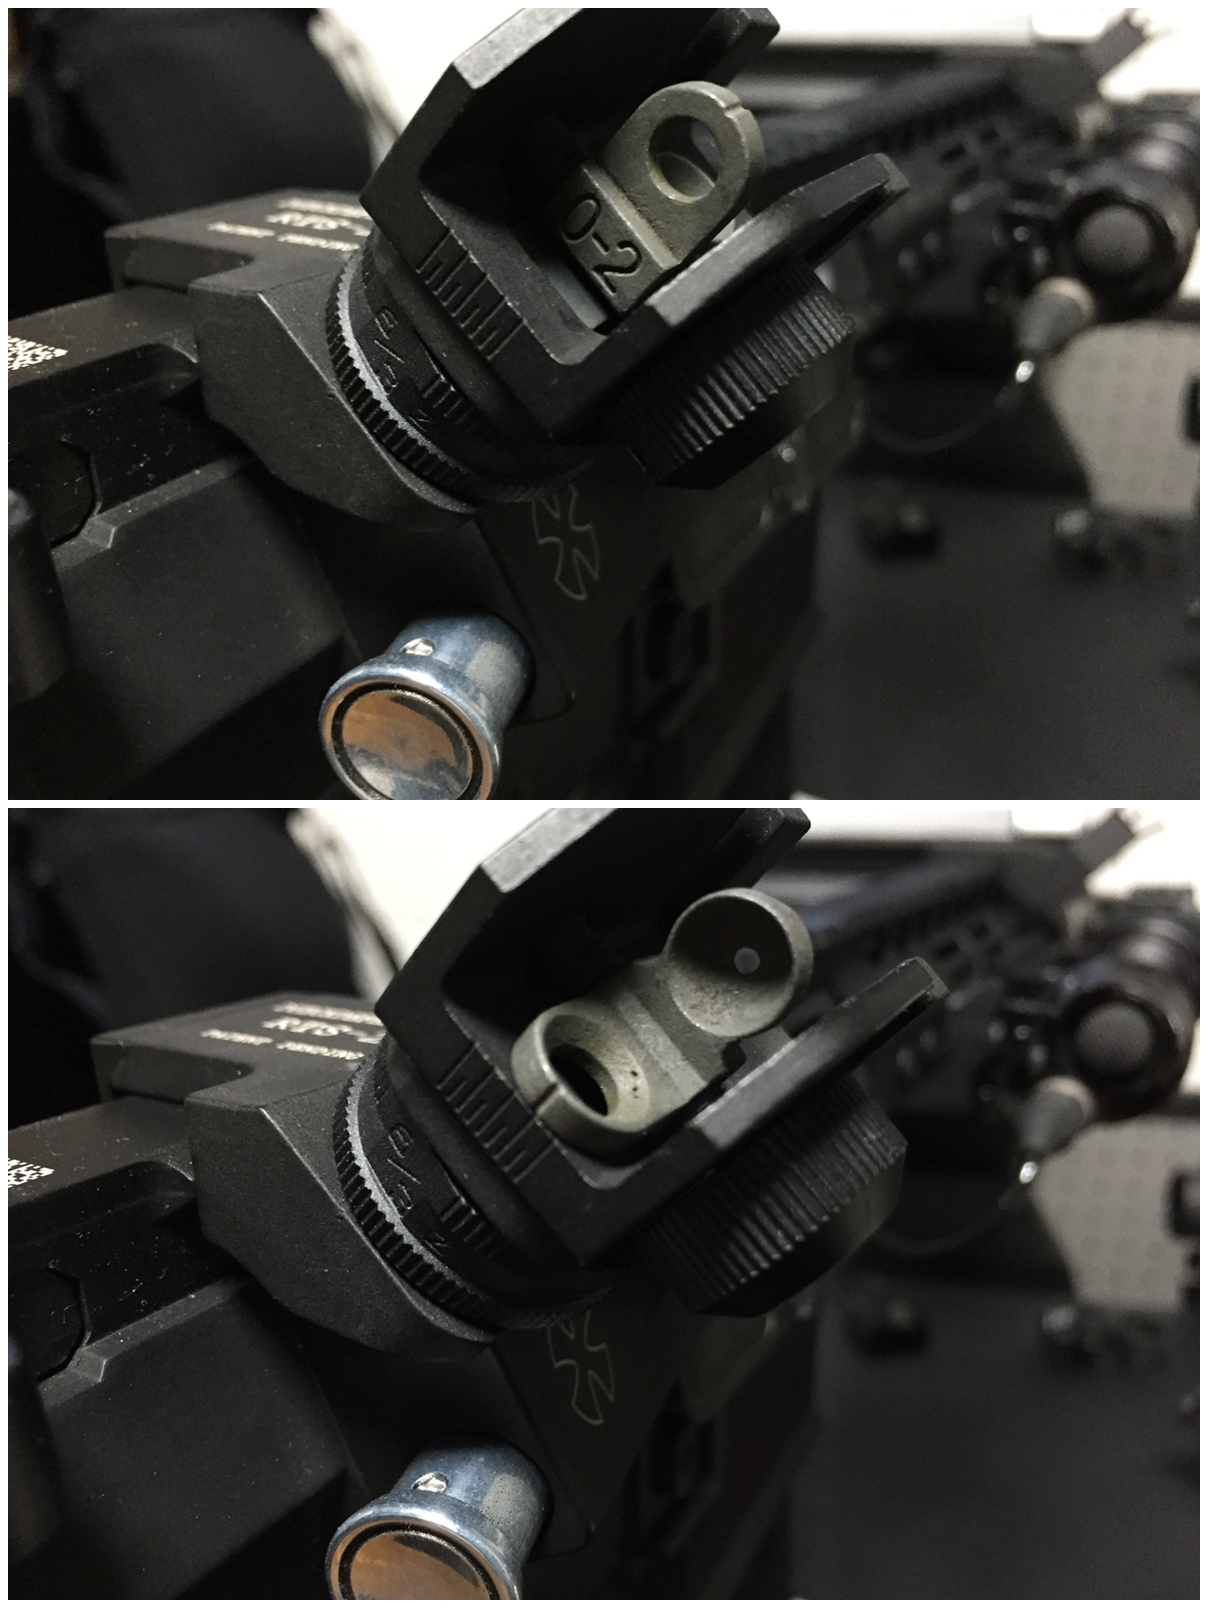 5 RAPID TRANSITION SIGHT FRONT & REAR DUECK DEFENSE TYPE ラピッドトランジションサイト オフセットサイト カスタム 取付 実物 レプリカ 比較